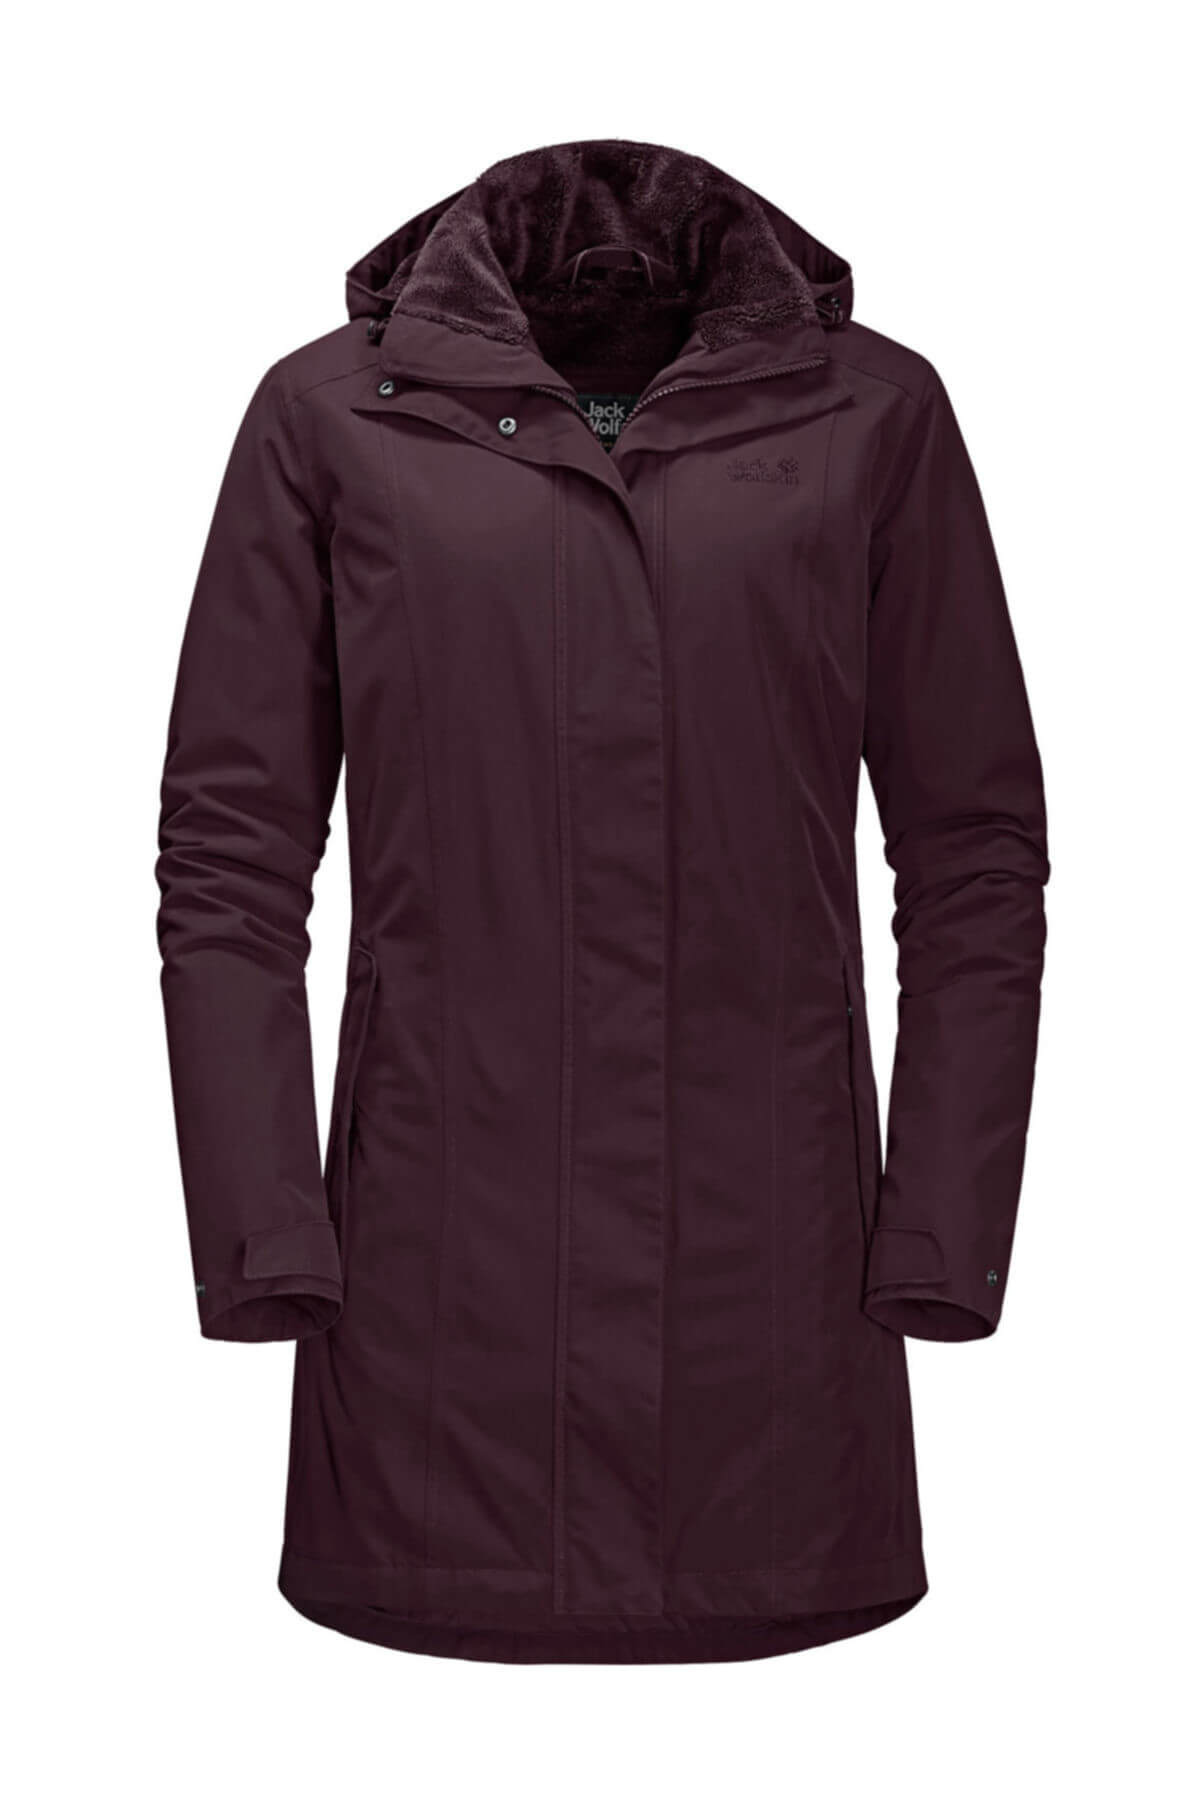 Jack Wolfskin Madison Avenue Coat Kadın Mont 1107732 1